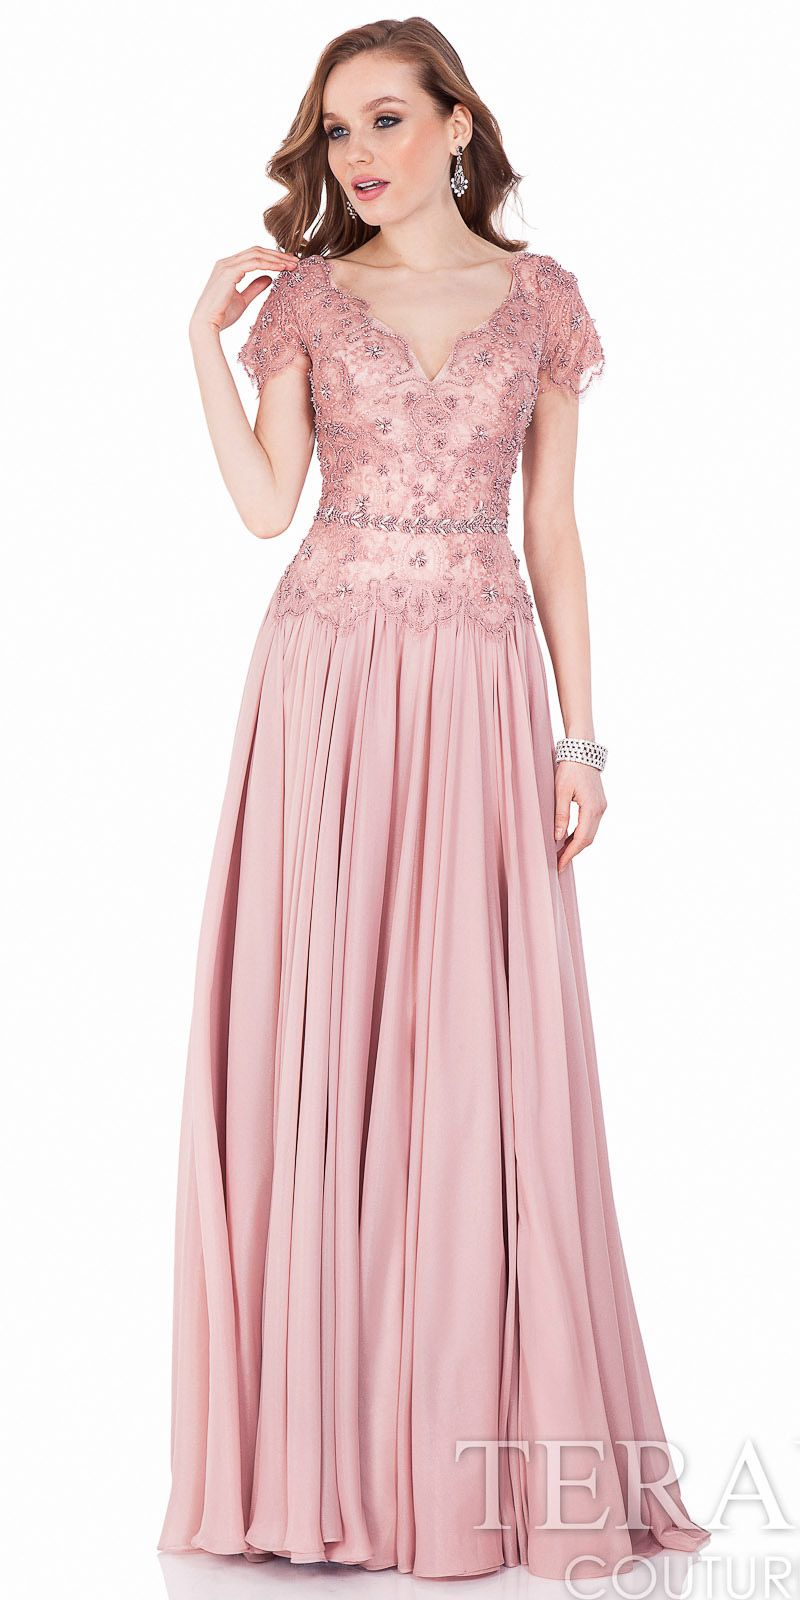 Beaded Chiffon A-line Evening Dress by Terani Couture #edressme ...